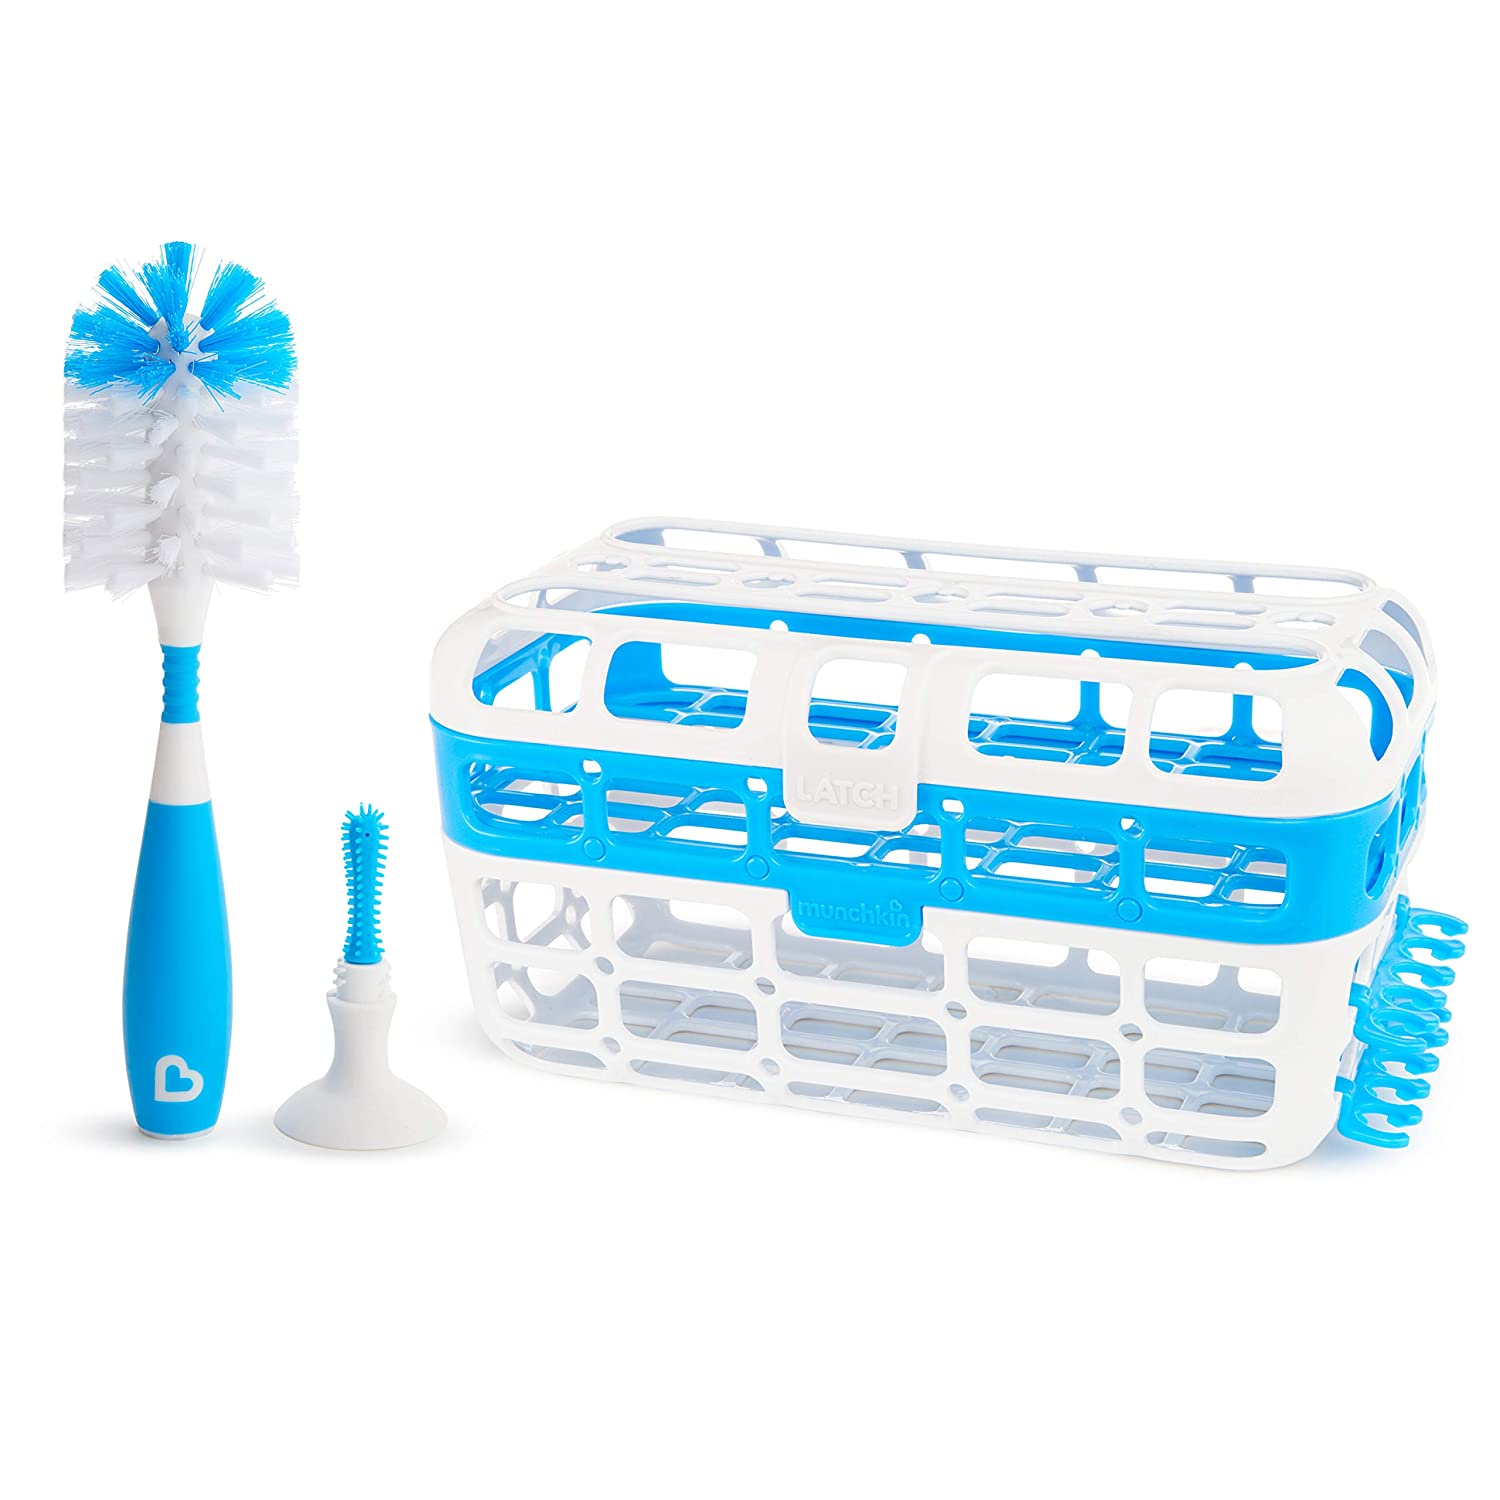 Munchkin Baby Bottle & Small Parts Cleaning Set, Includes High Capacity Dishwasher Basket & Bristle Bottle Brush, Blue